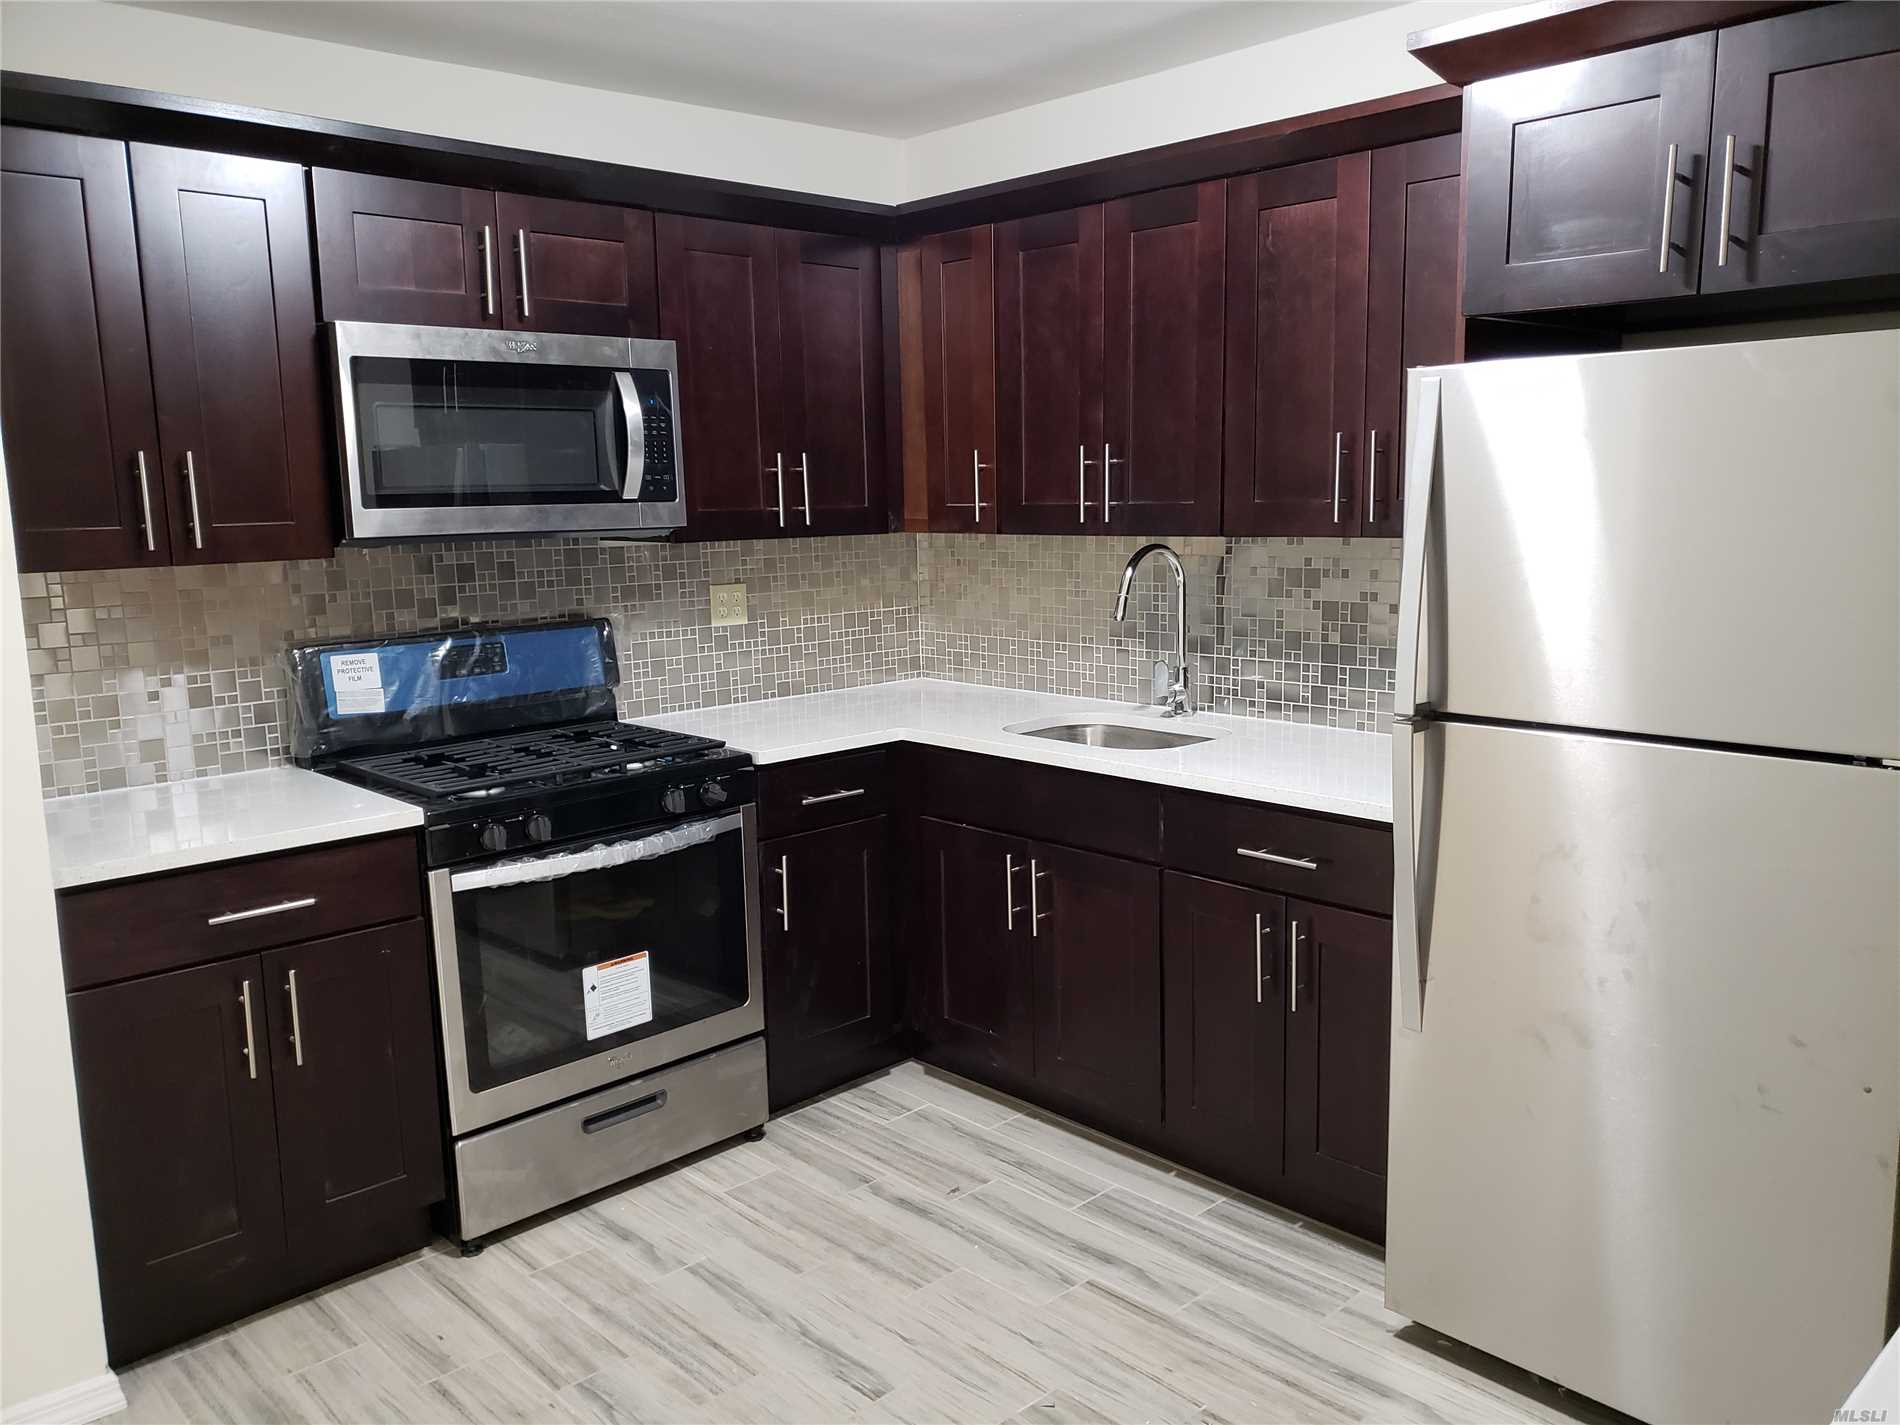 Huge Fully Renovated 3 Bedrooms, 1.5 Bath Apartment, Large Eik With Granite Countertops, Balcony, Few Blocks From Shopping, Schools And F Train.